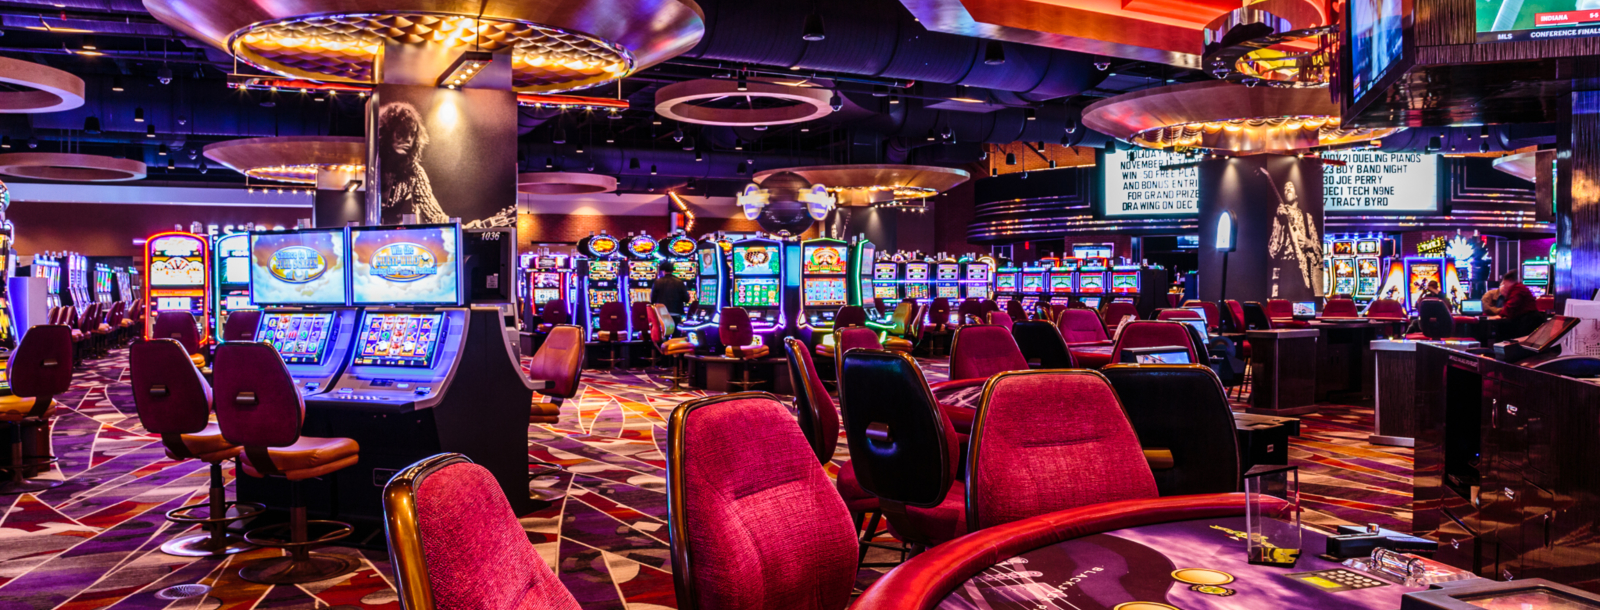 casino sioux city iowa